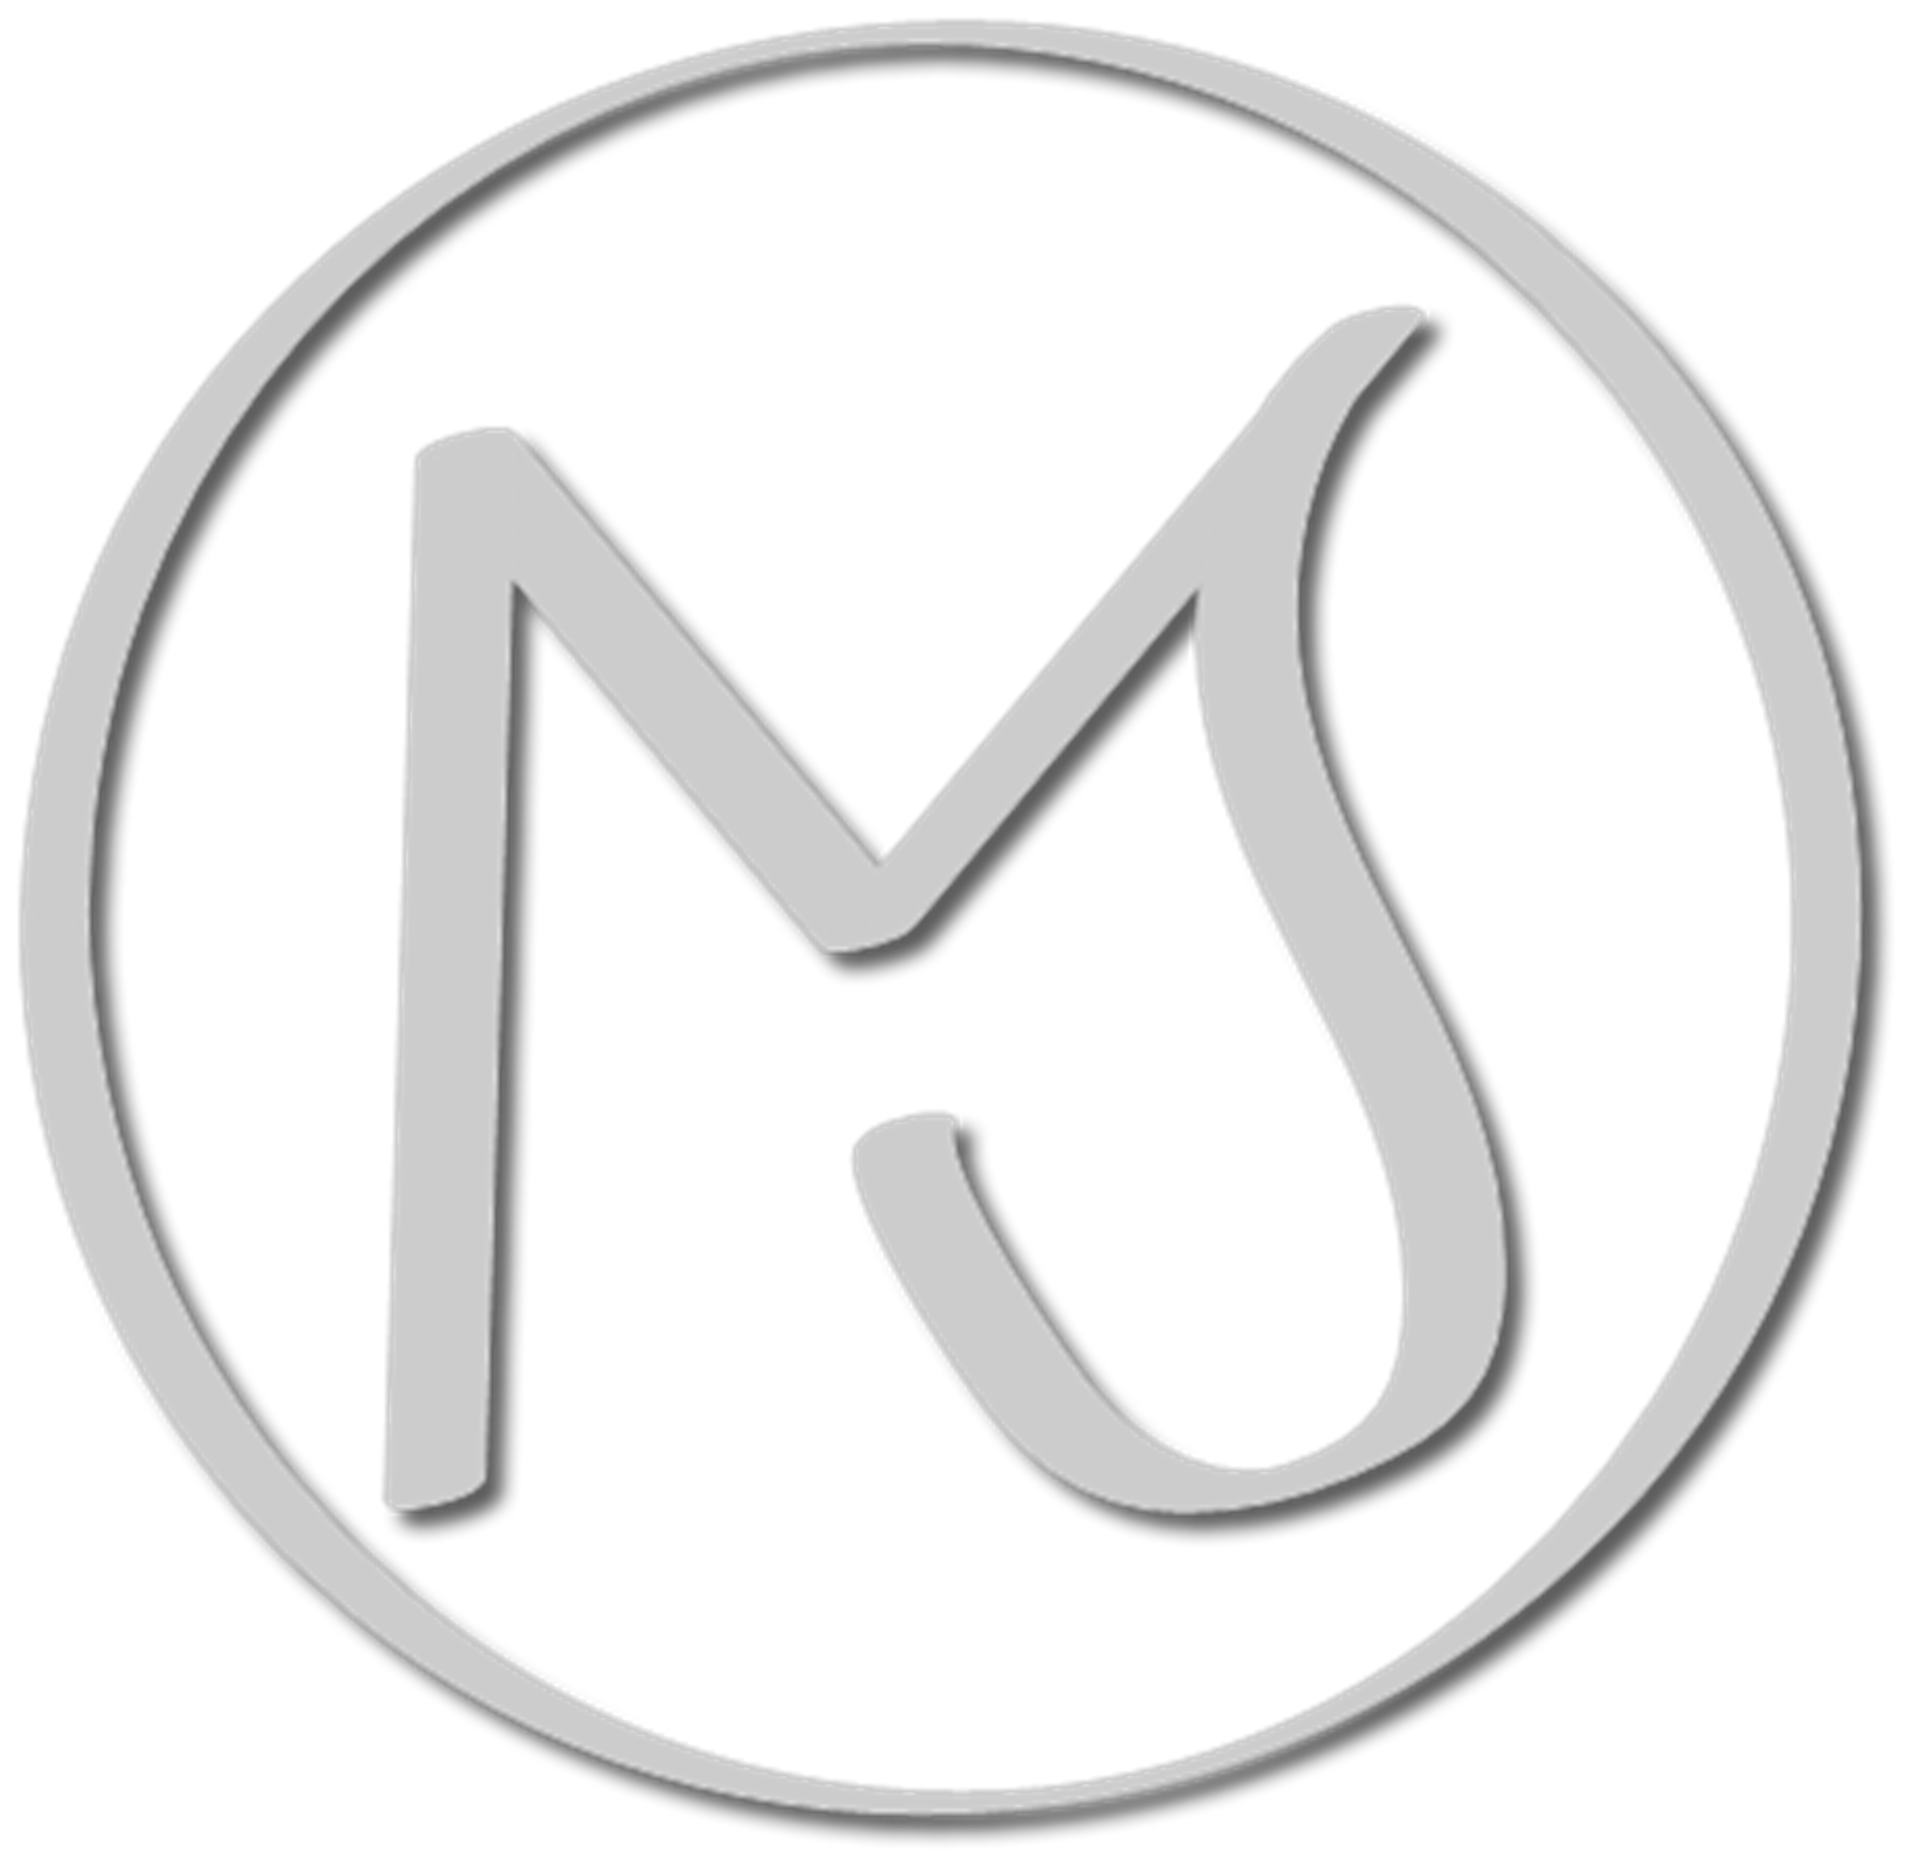 Michael_sean_logo